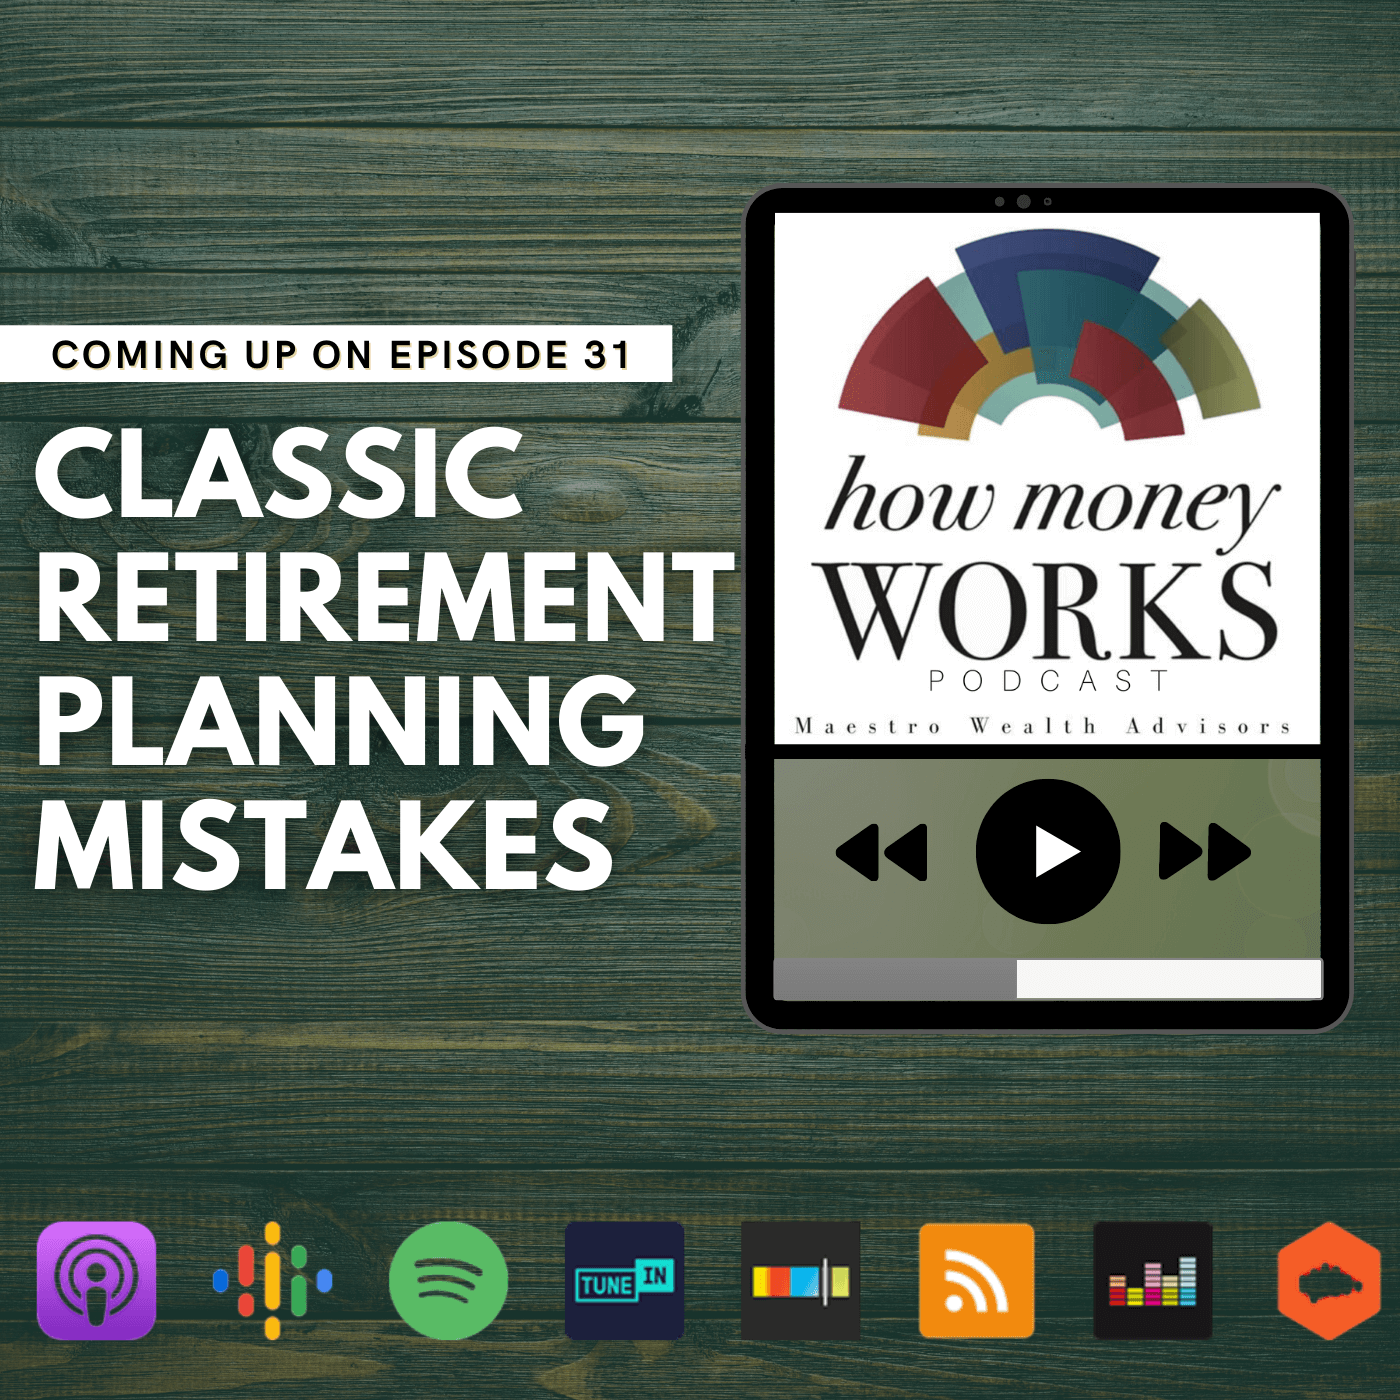 Classic Retirement Planning Mistakes